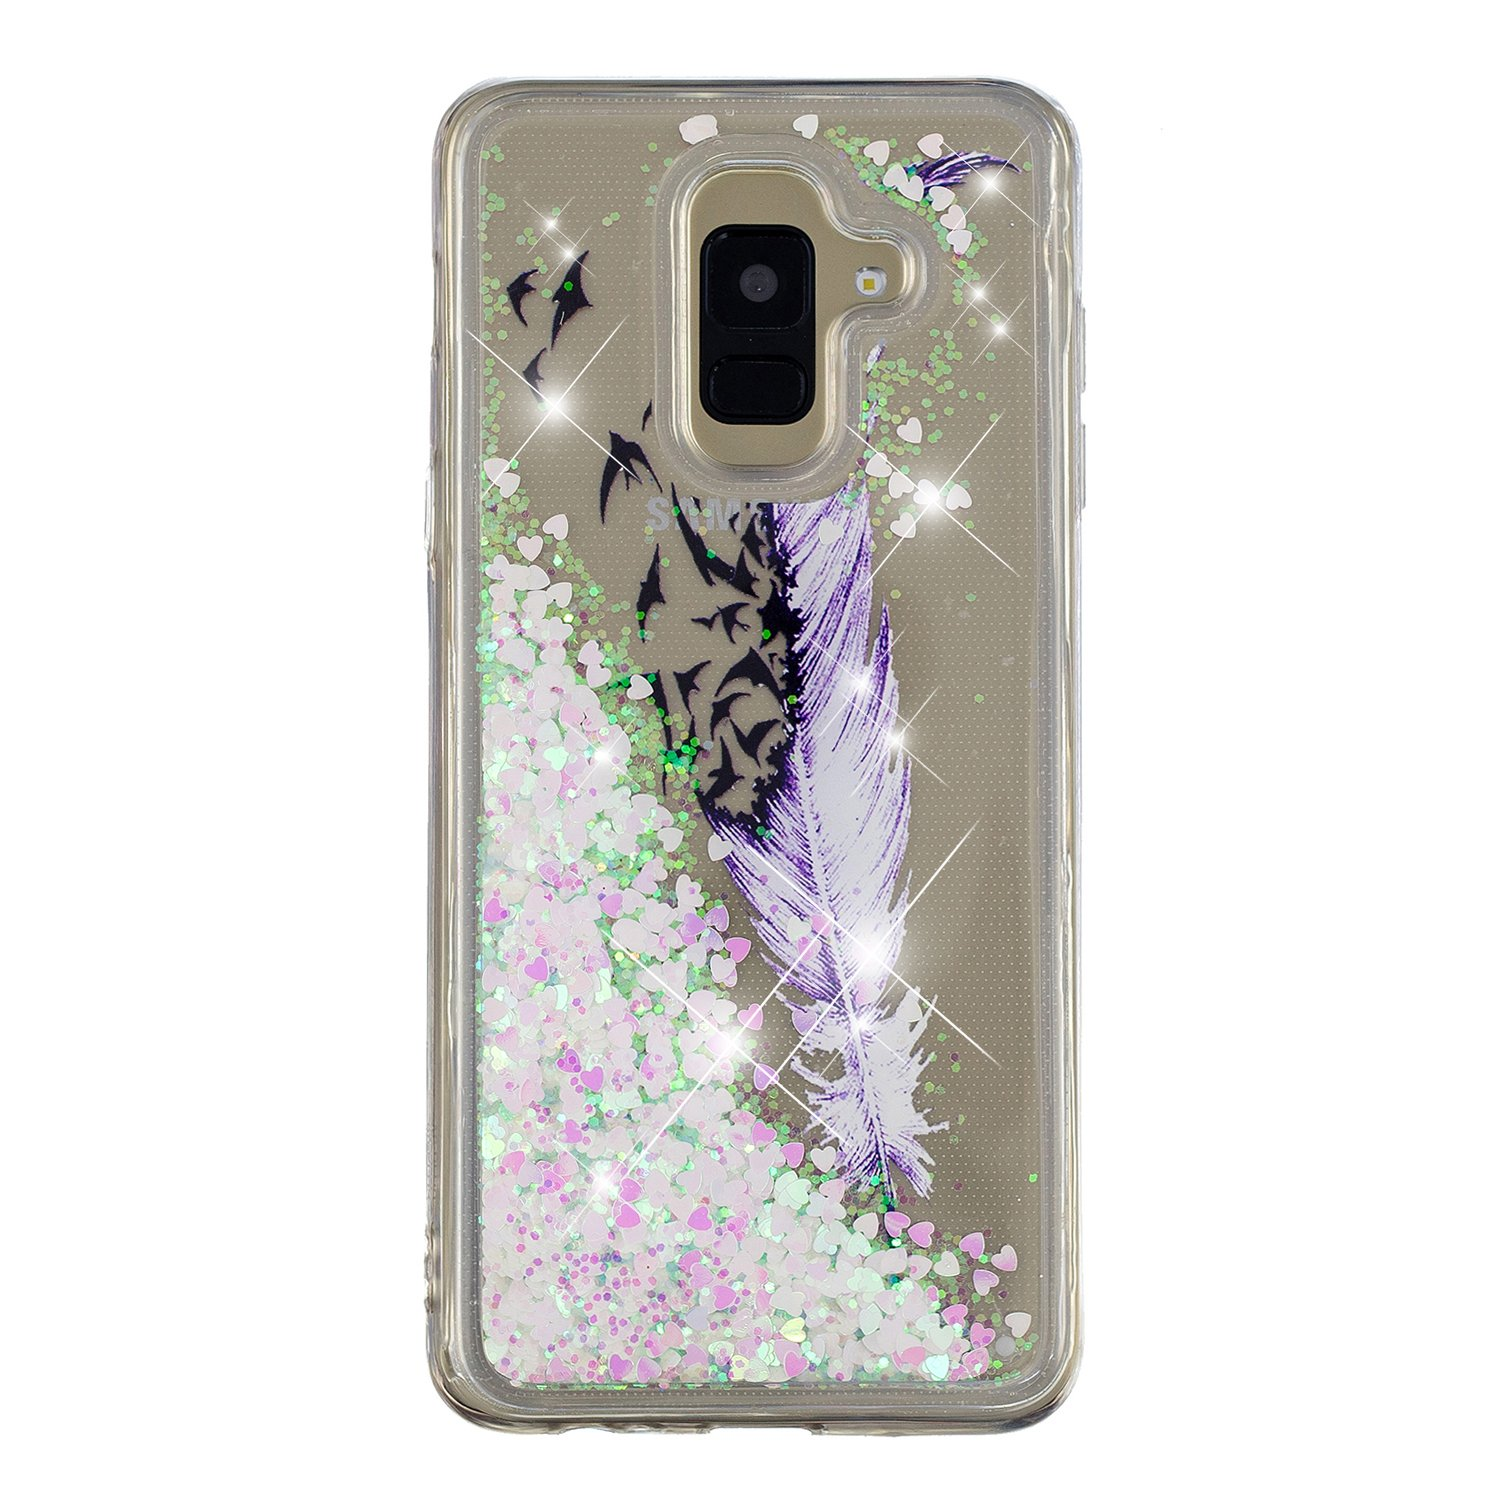 Samsung Galaxy A6/A6+ Case Floating Quicksand Glitter Bling TPU Flowing Liquid Luxury Sparkle Cover (Color 01, Galaxy A6 Plus)